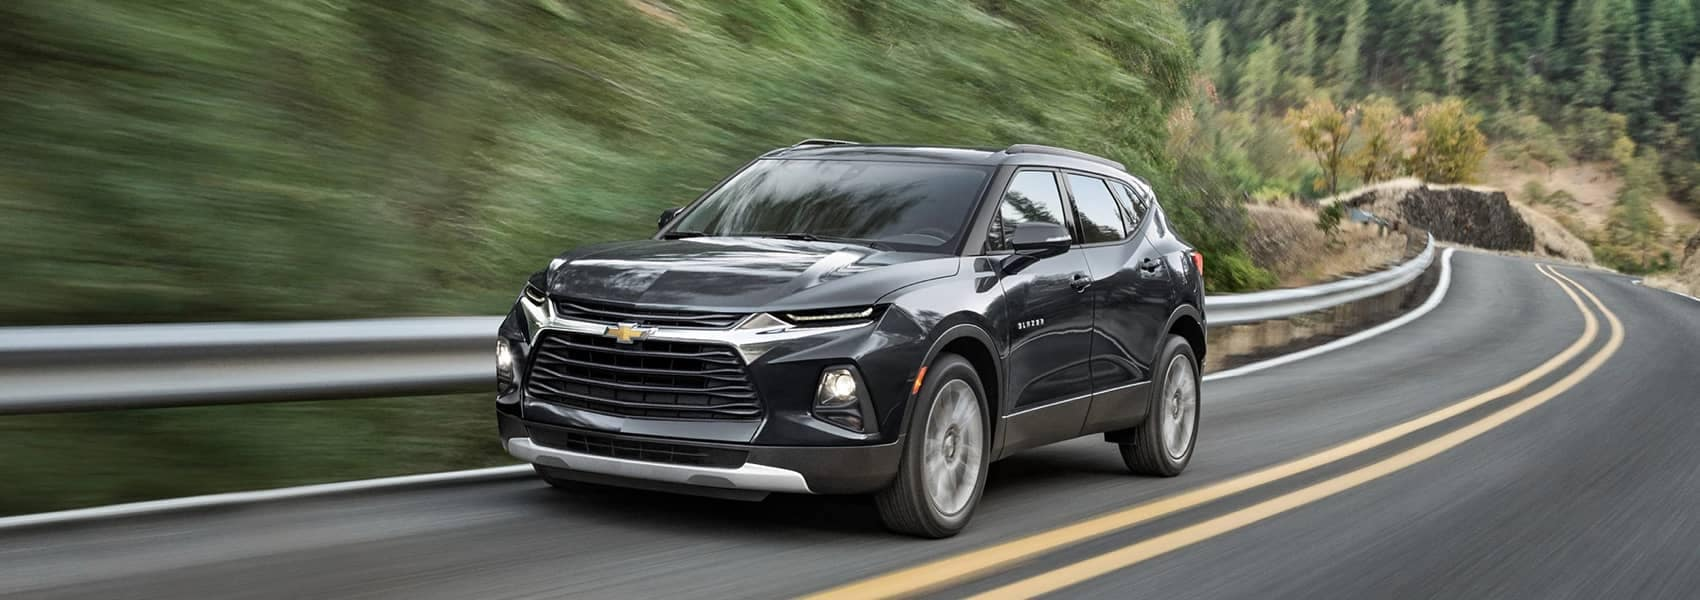 2021 Black Chevrolet Blazer on a winding road